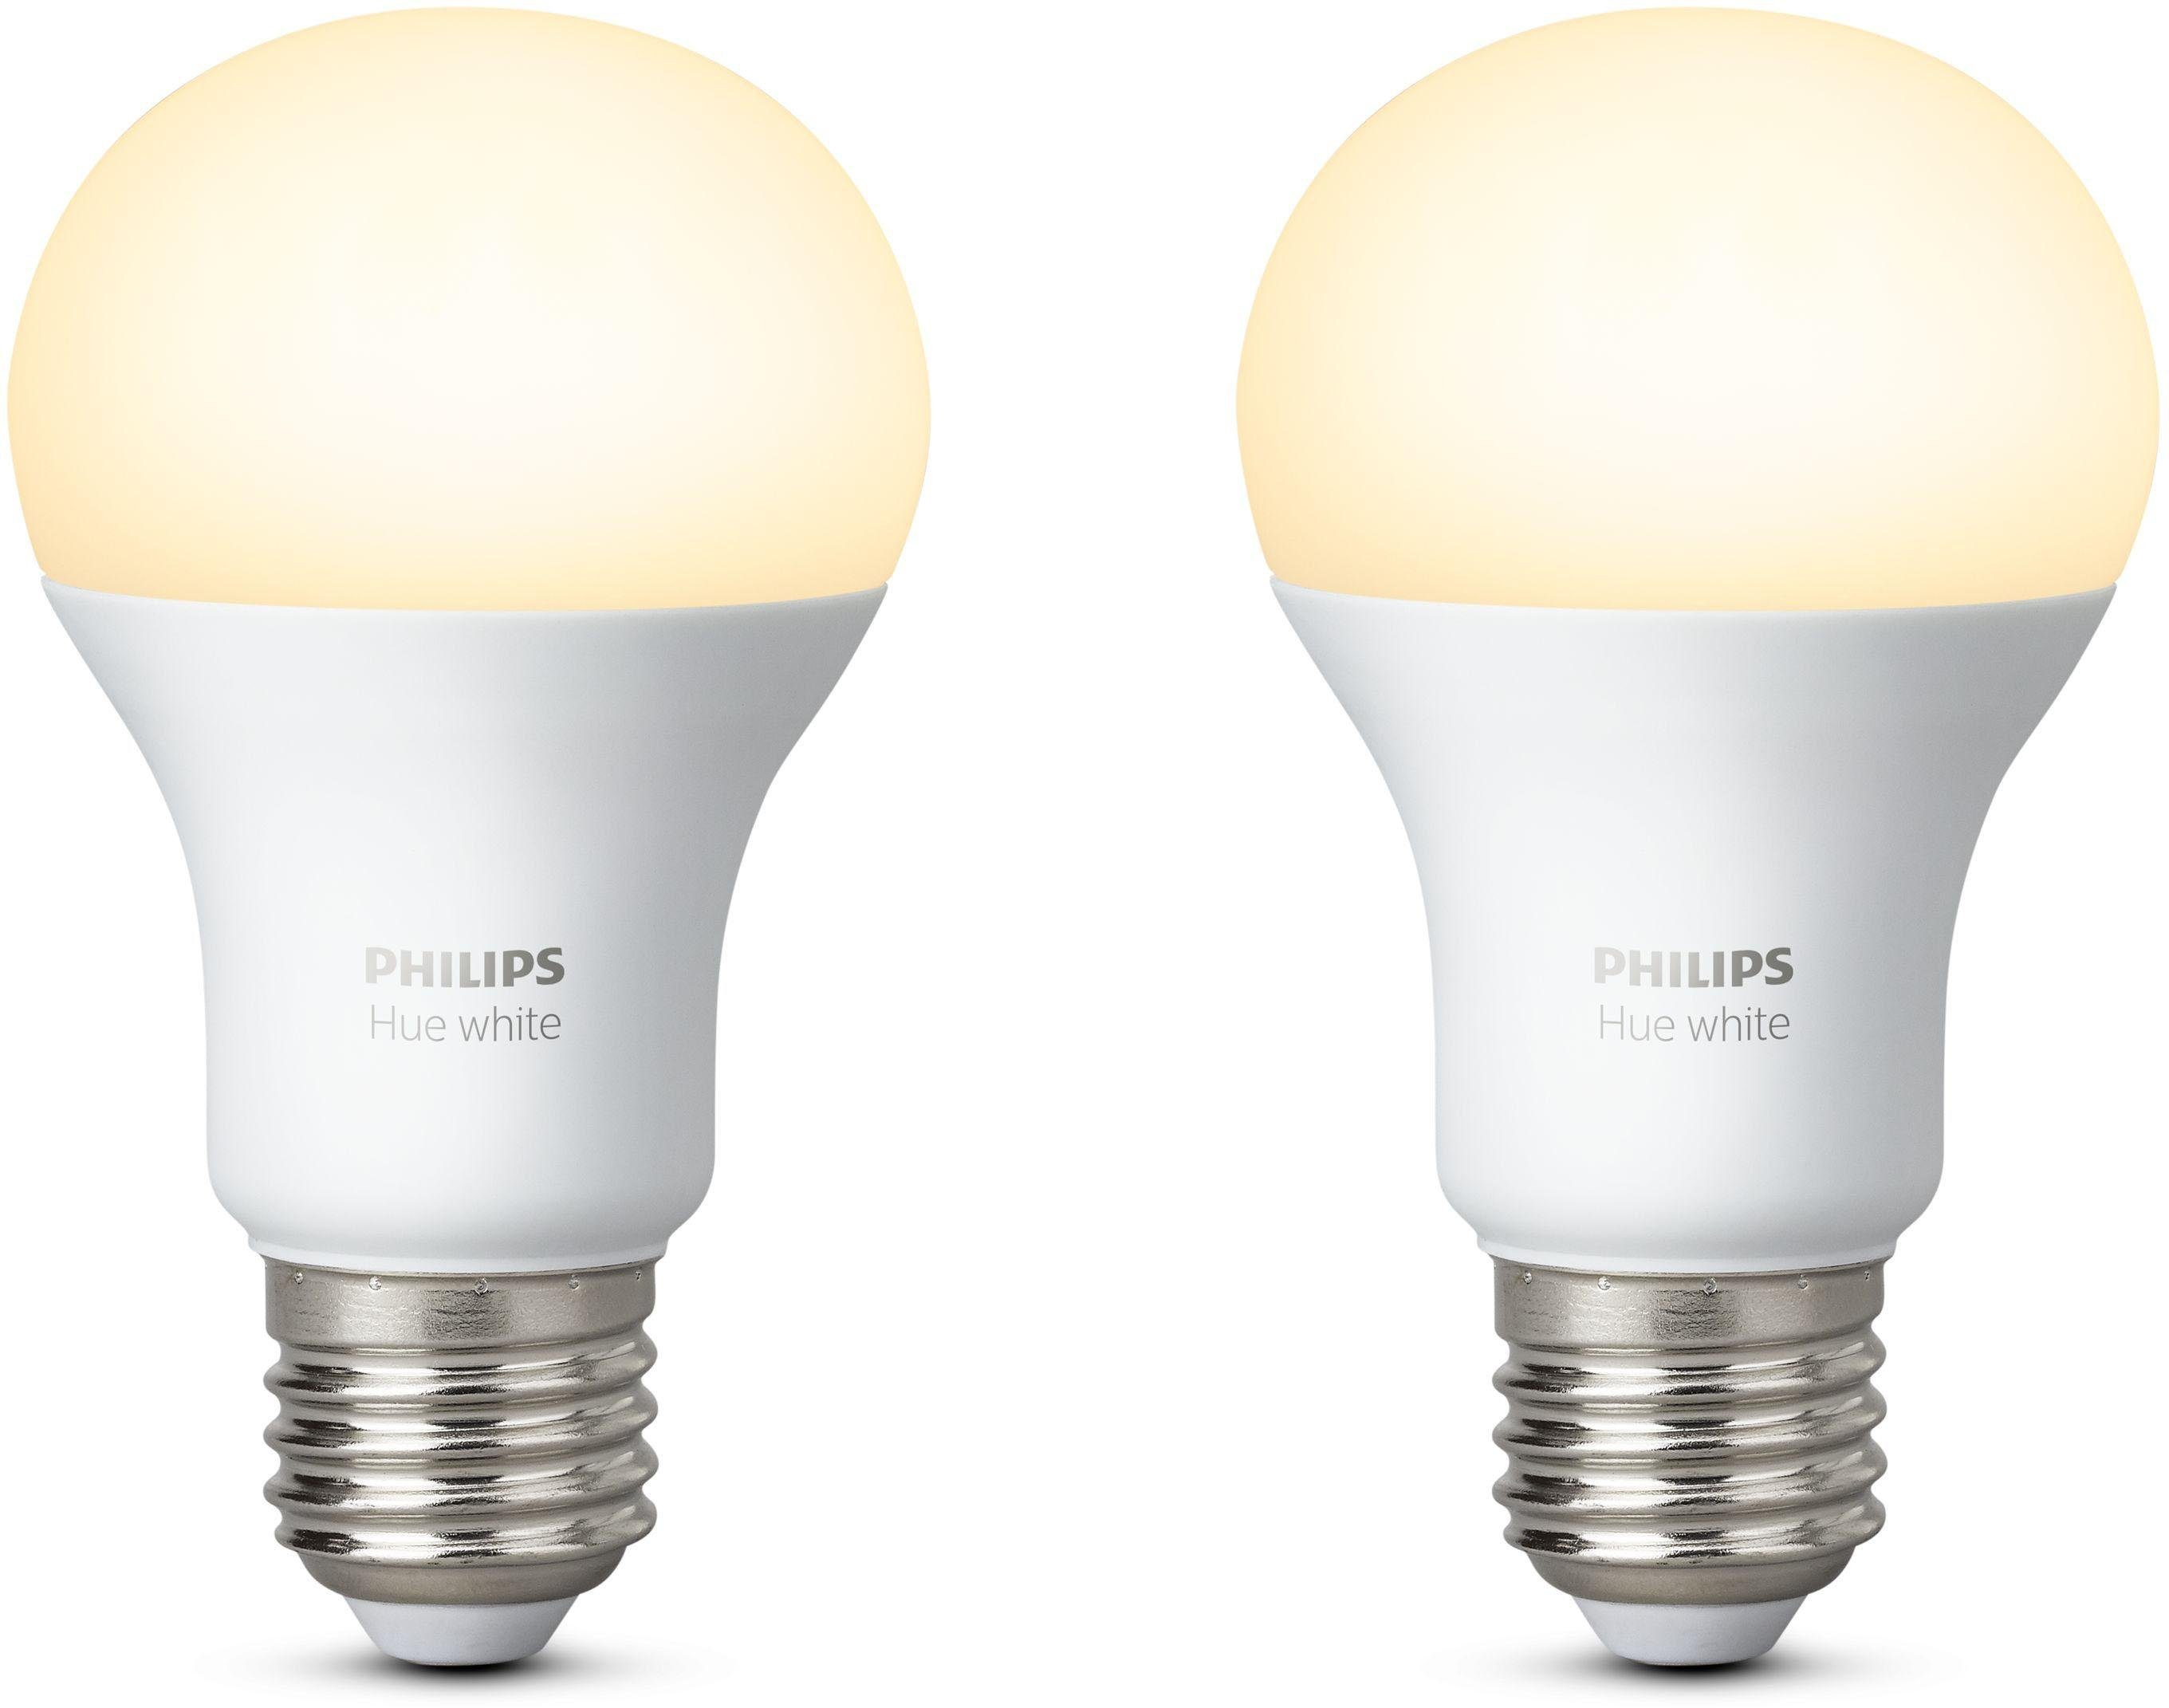 Philips Hue Lampen : Philips hue led lampen online kaufen otto